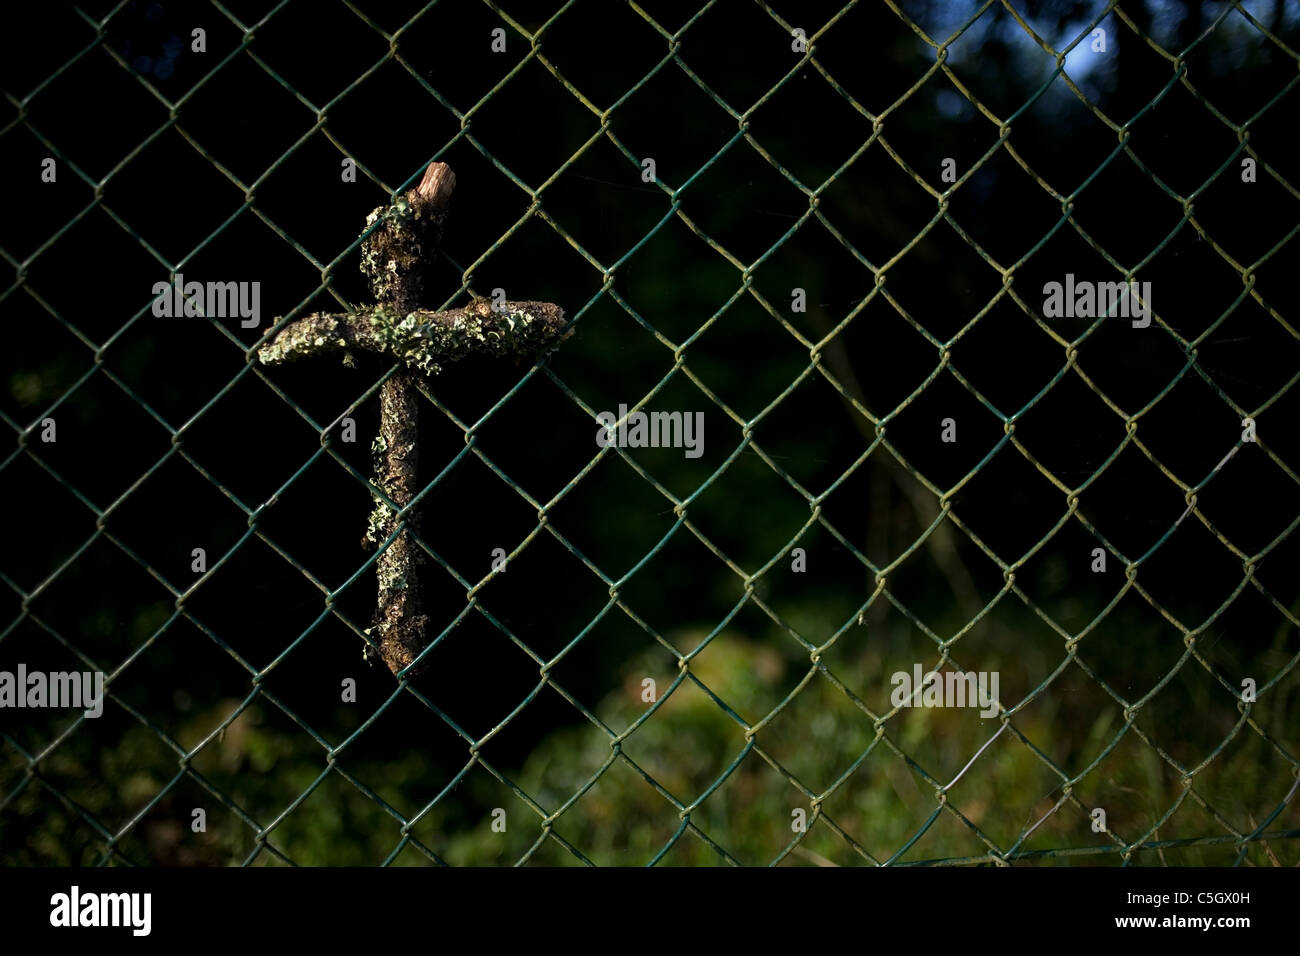 A hand made cross decorates a wire fence in the French Way of St. James Way, Galicia, Spain - Stock Image